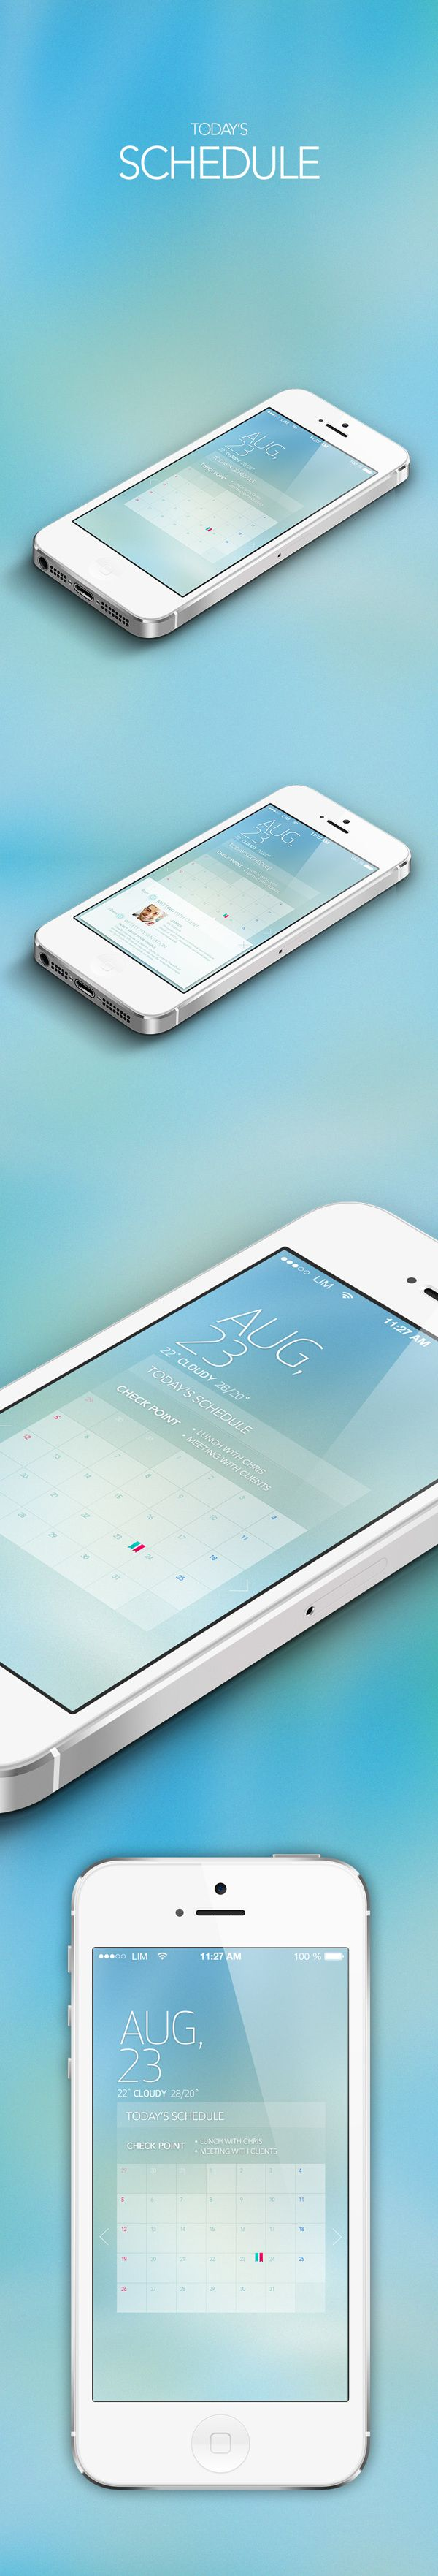 Schedule calendar app design by Hyelim Choi, via Behance